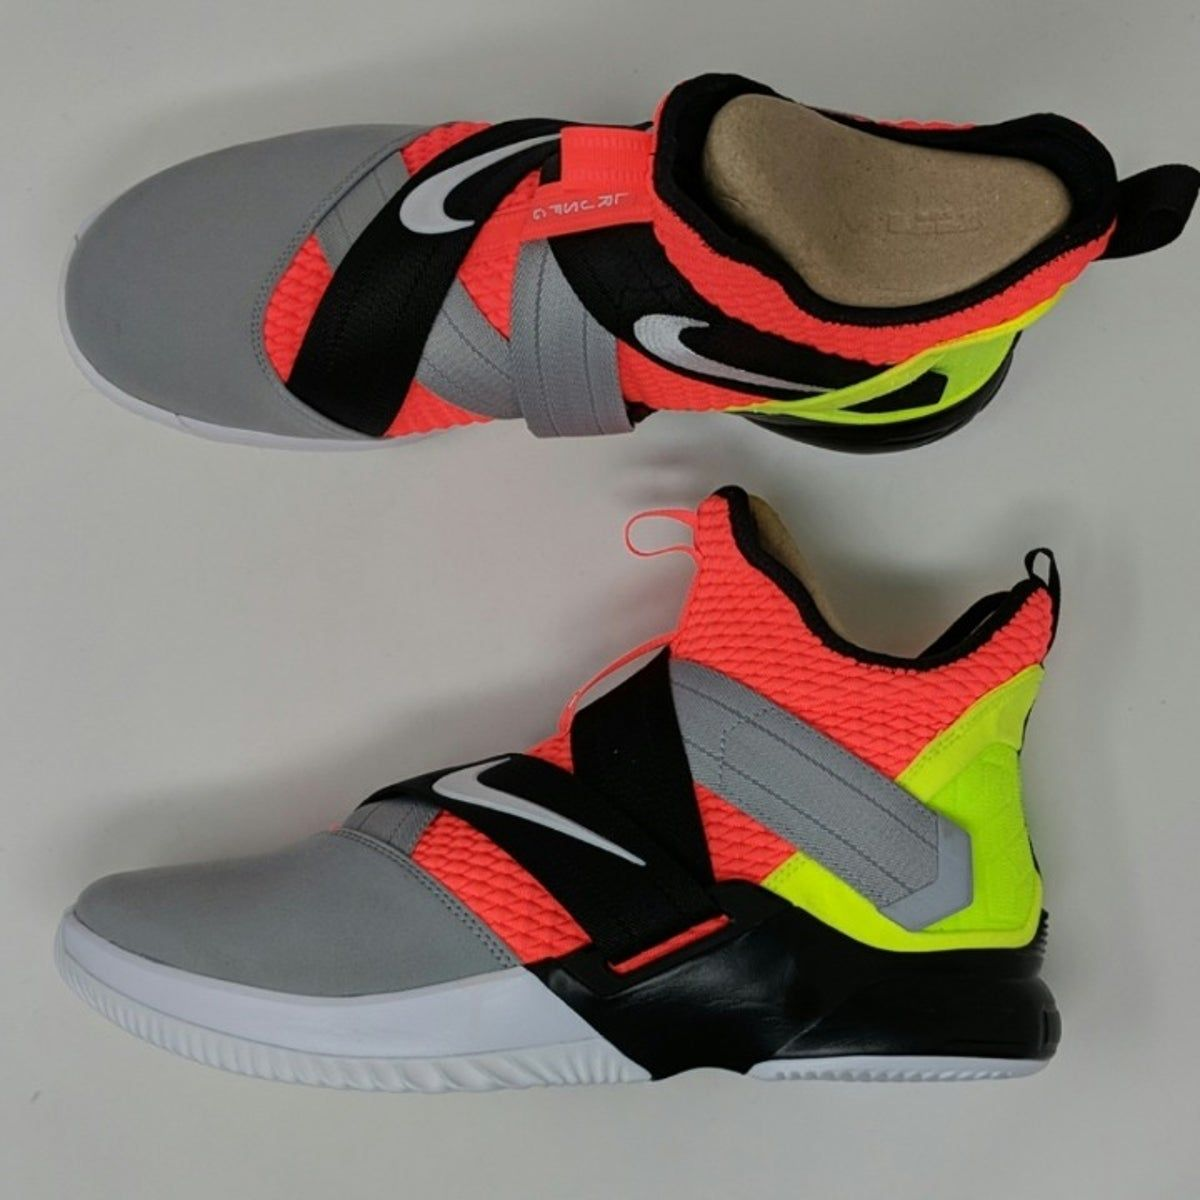 Muchos envidia Consentimiento  Nike Lebron Soldier XII SFG Basketball | Girls basketball shoes, Nike shoes  girls, Cute nike shoes